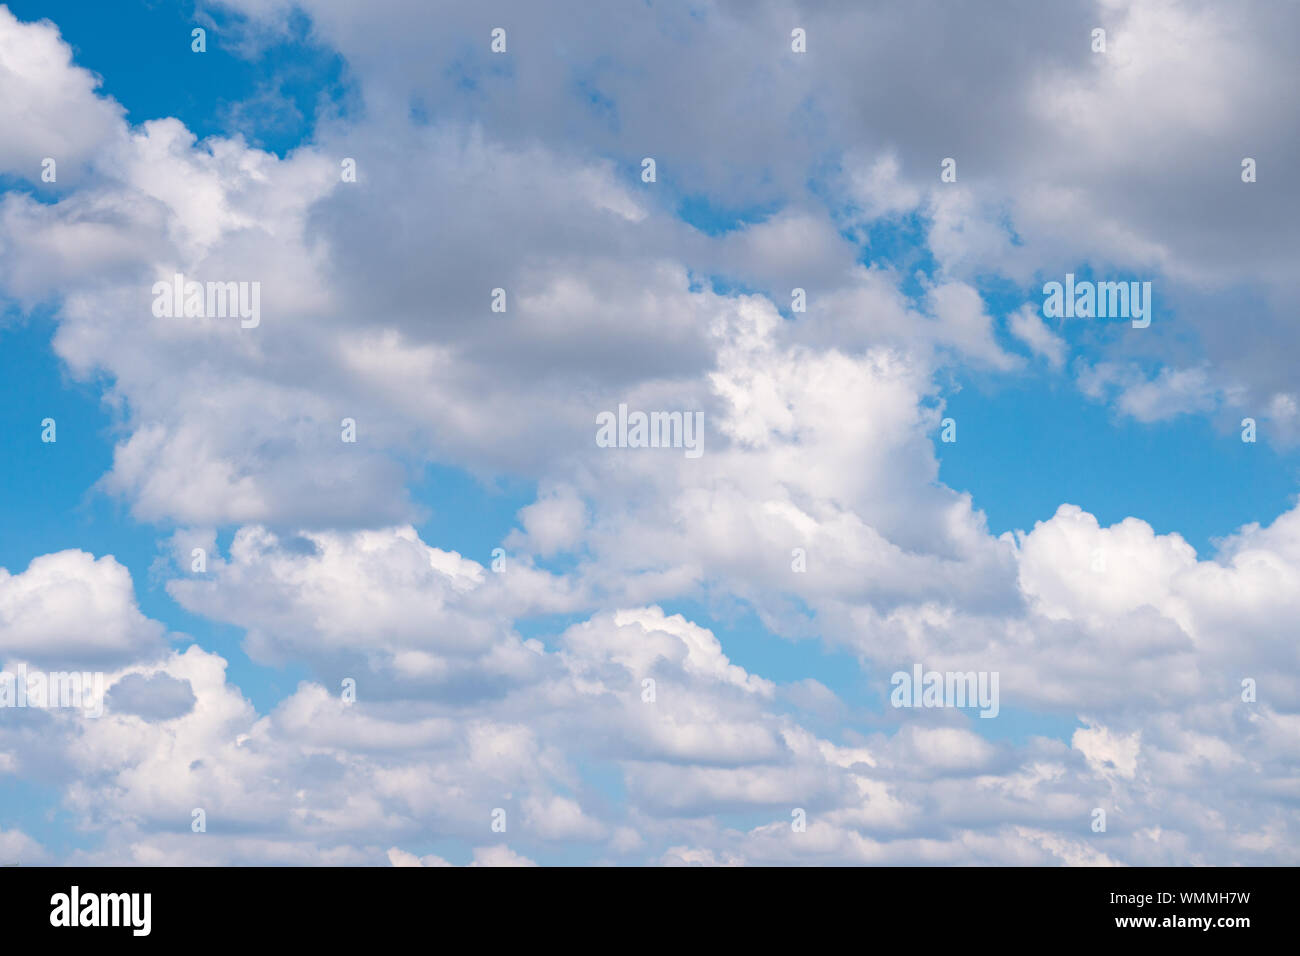 The Blue Sky With Moving White Clouds The Sky Is A Beautiful Color Shade Suitable For Use As A Background Image Stock Photo Alamy